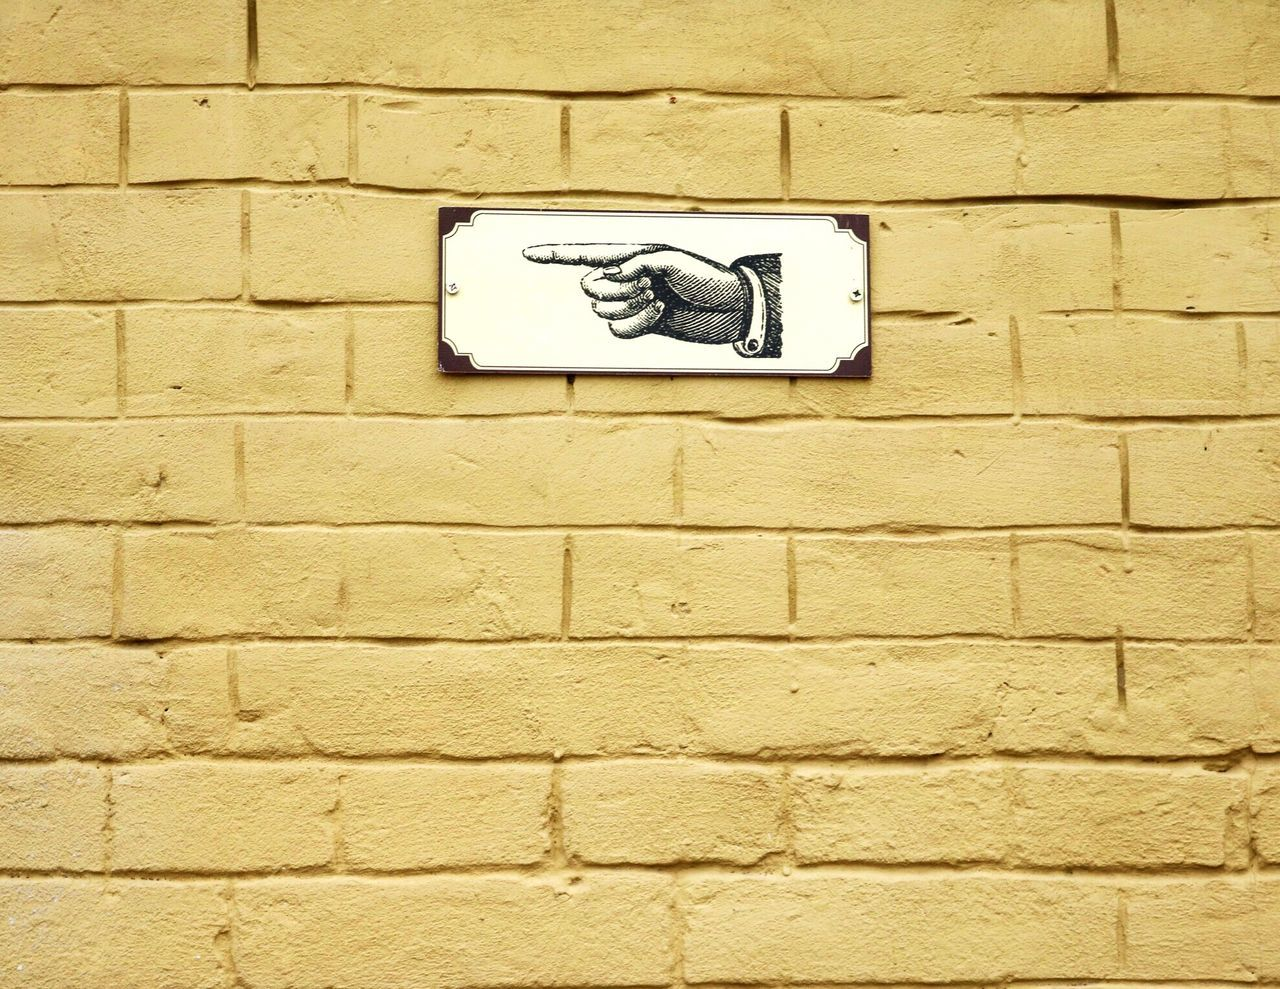 Wall - Building Feature Brick Wall Built Structure No People Architecture Outdoors Day Close-up Photo Photography Canon750D Canon_official Canon_photos Canonphotography Canon Design City Kiev Yellow Street Wall Direction Left Go Away Sign